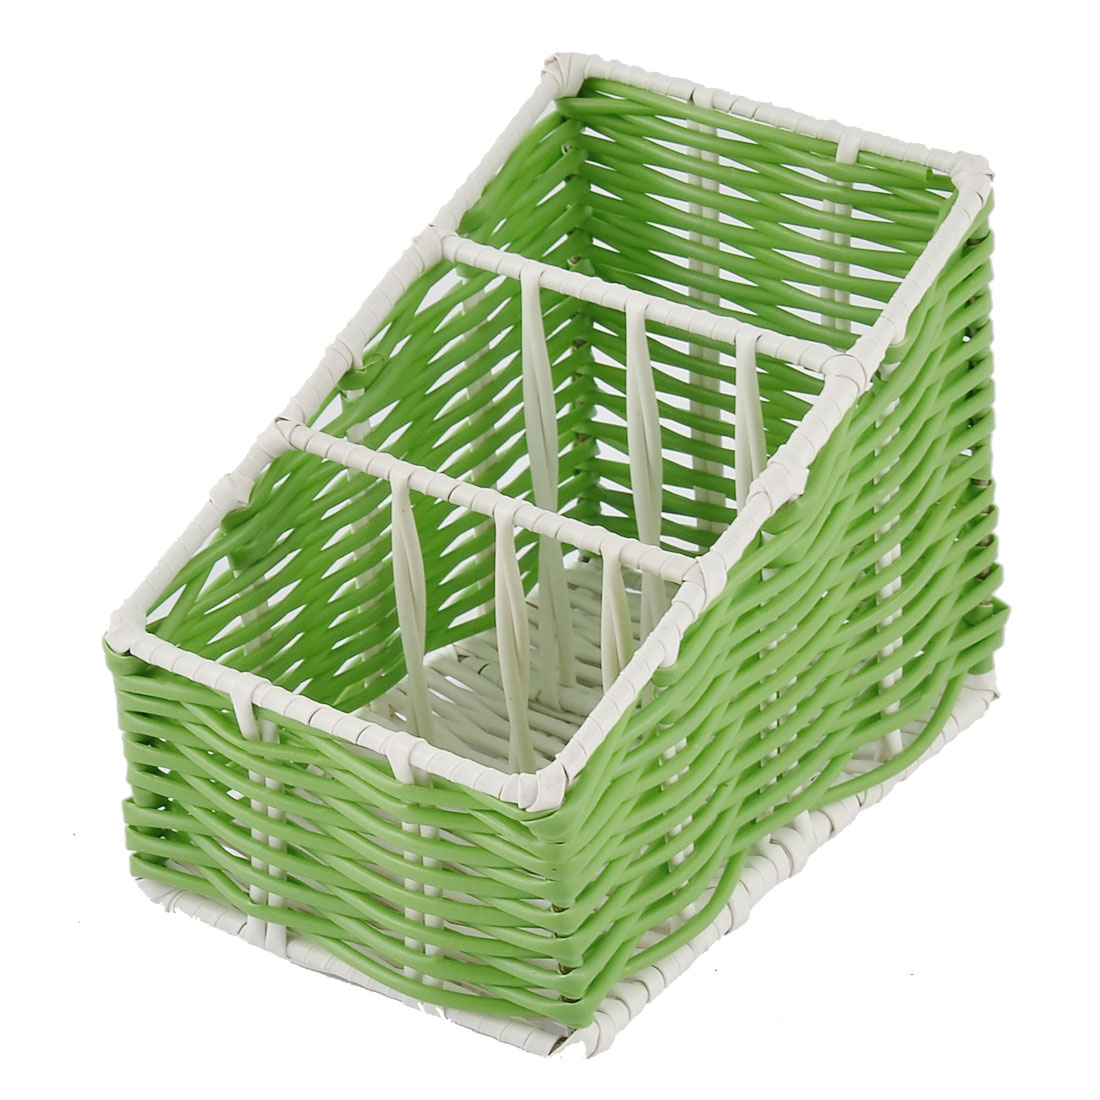 Kitchen Desk Plastic 3 Grids Woven Holder Organizer Storage Box Basket Green